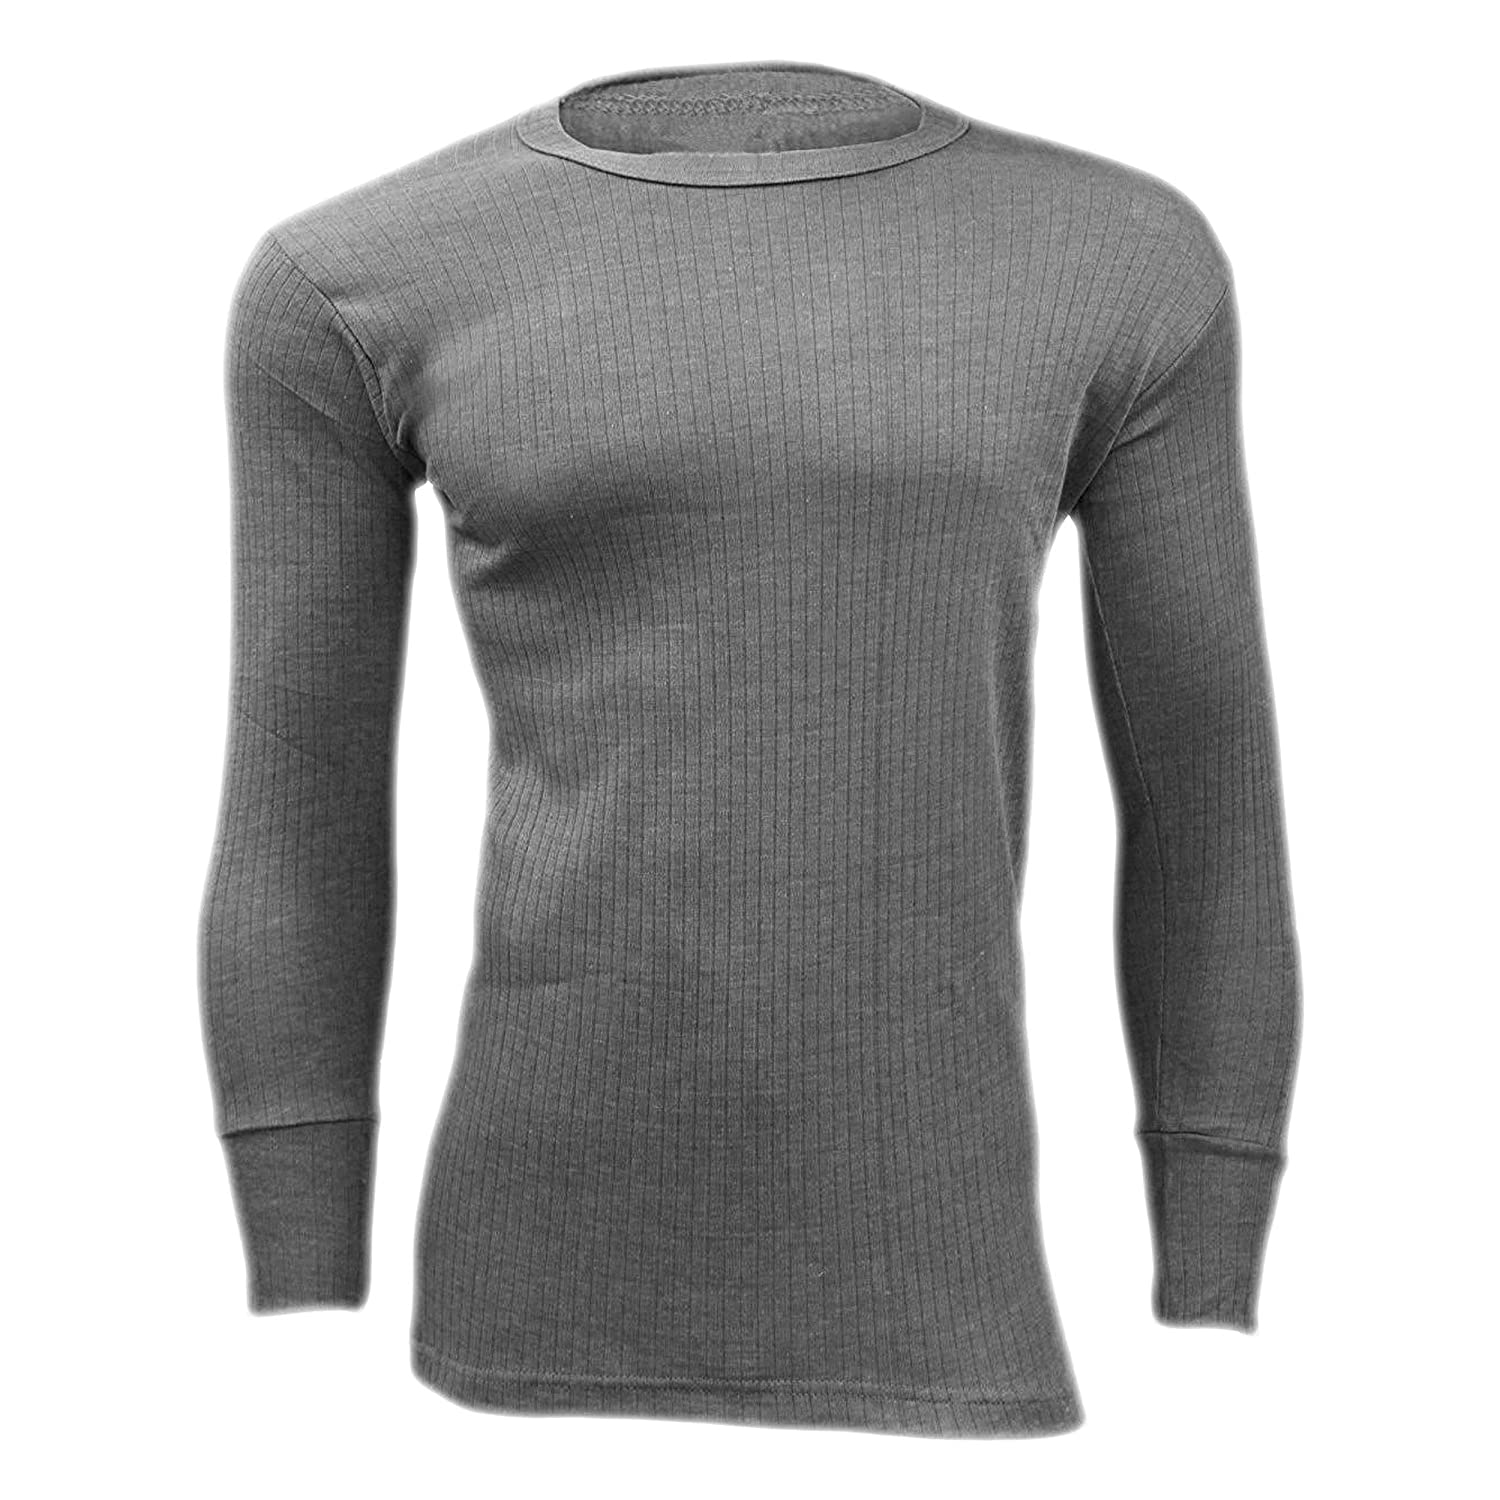 3 Pack Charcoal Thermal Long Sleeve Top Underwear Men's Base Layer Winter Work Outdoor